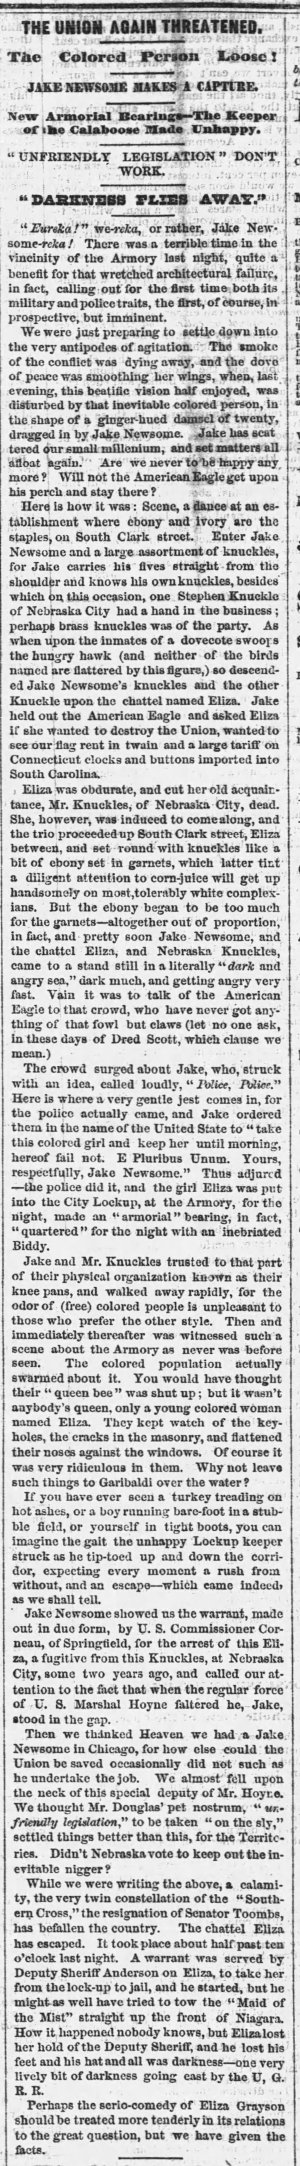 Chicago Tribune article on Eliza's second escape in 1860 while she was in Chicago.